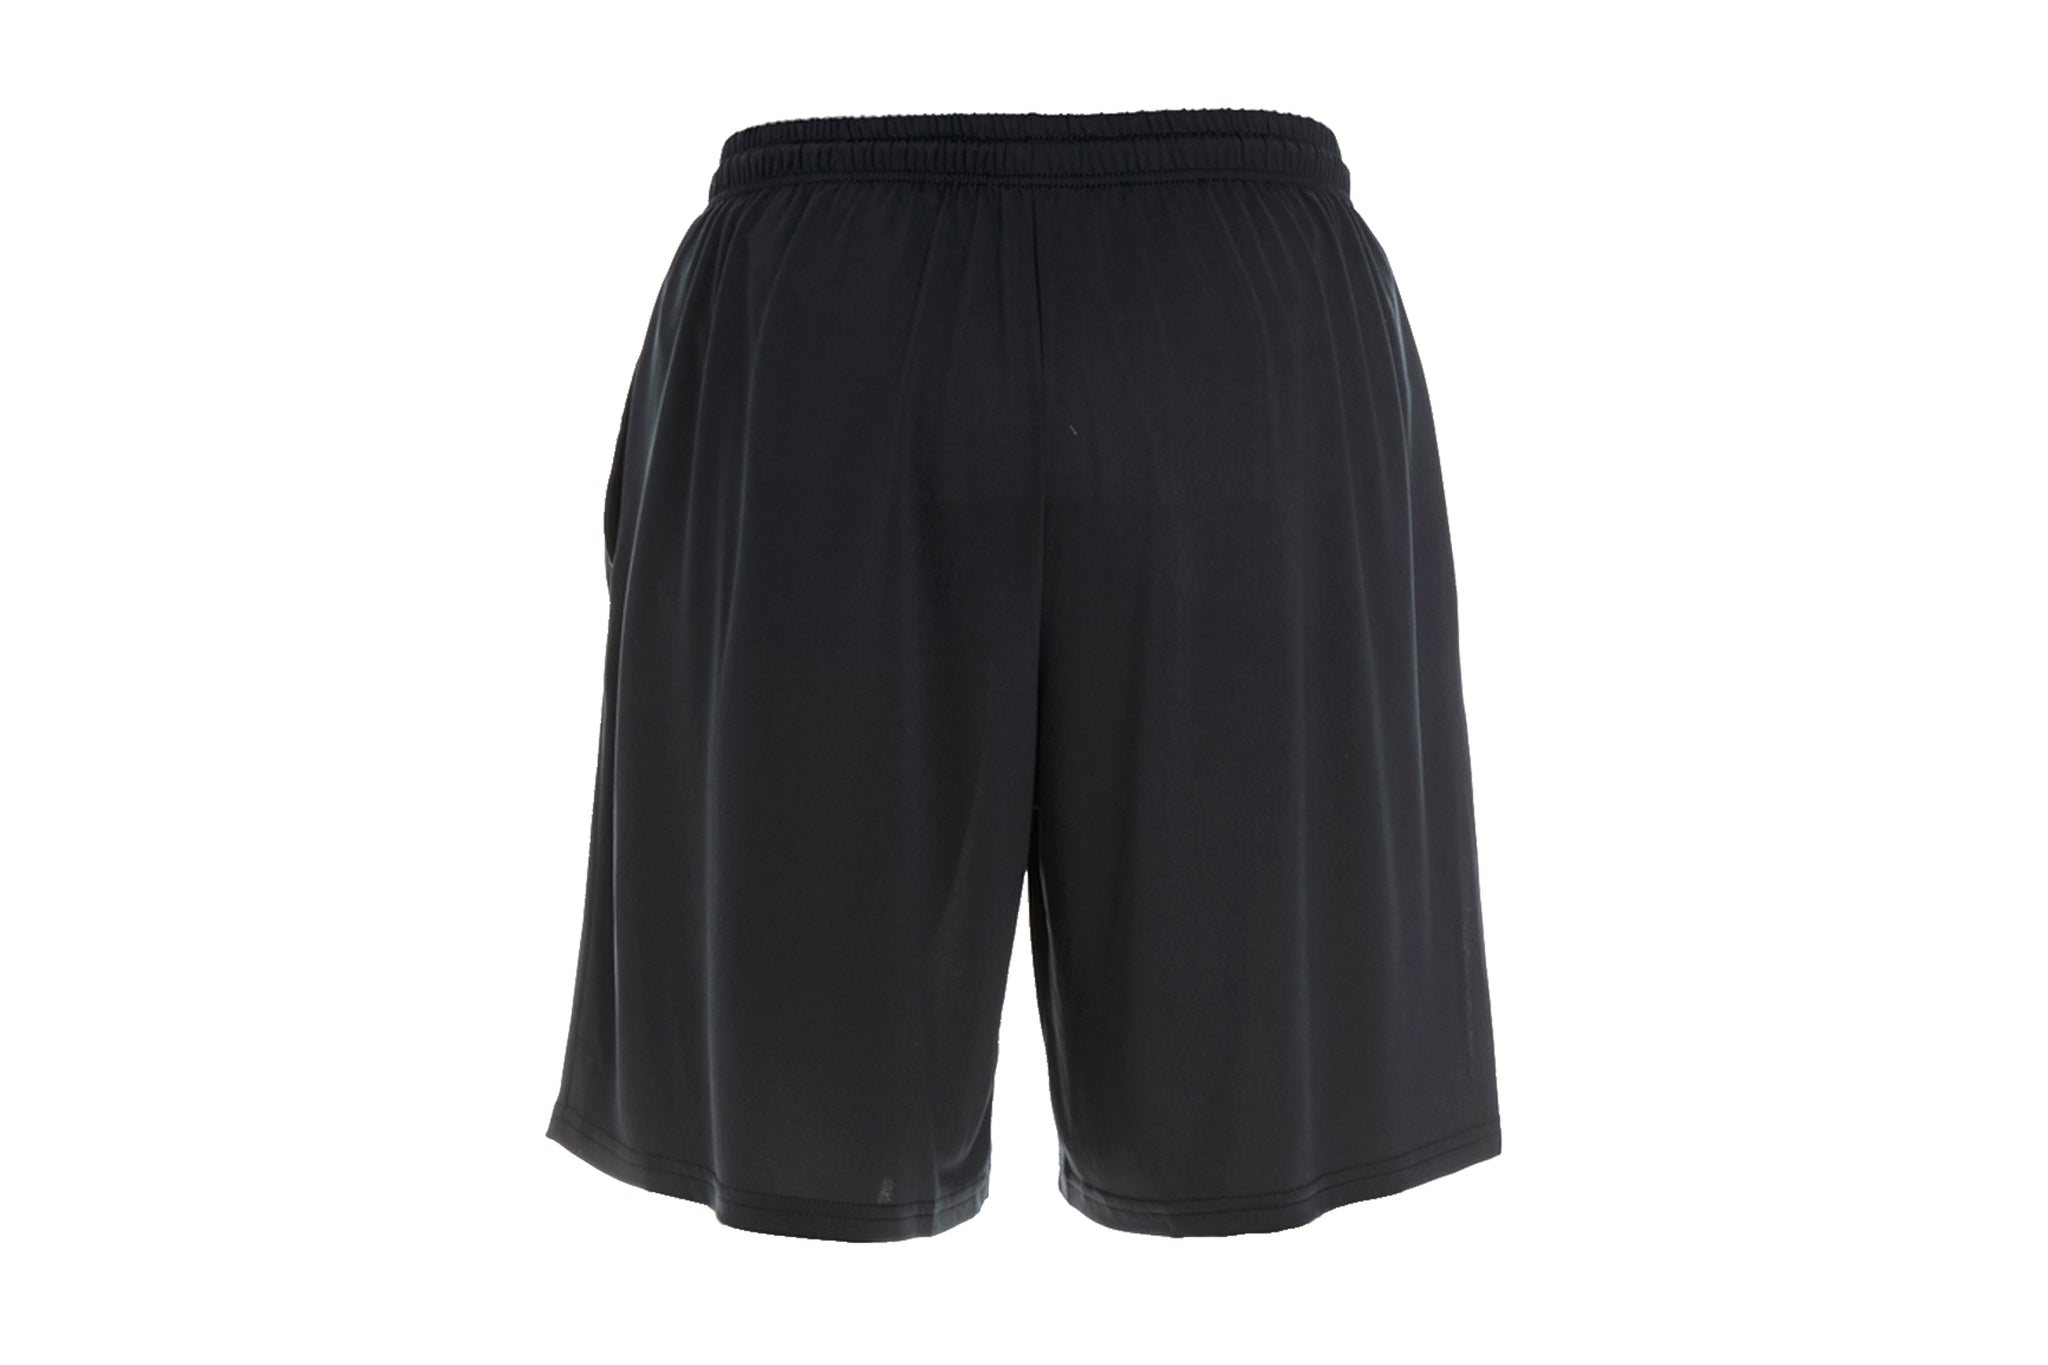 "Station Short- 9"" Inseam"